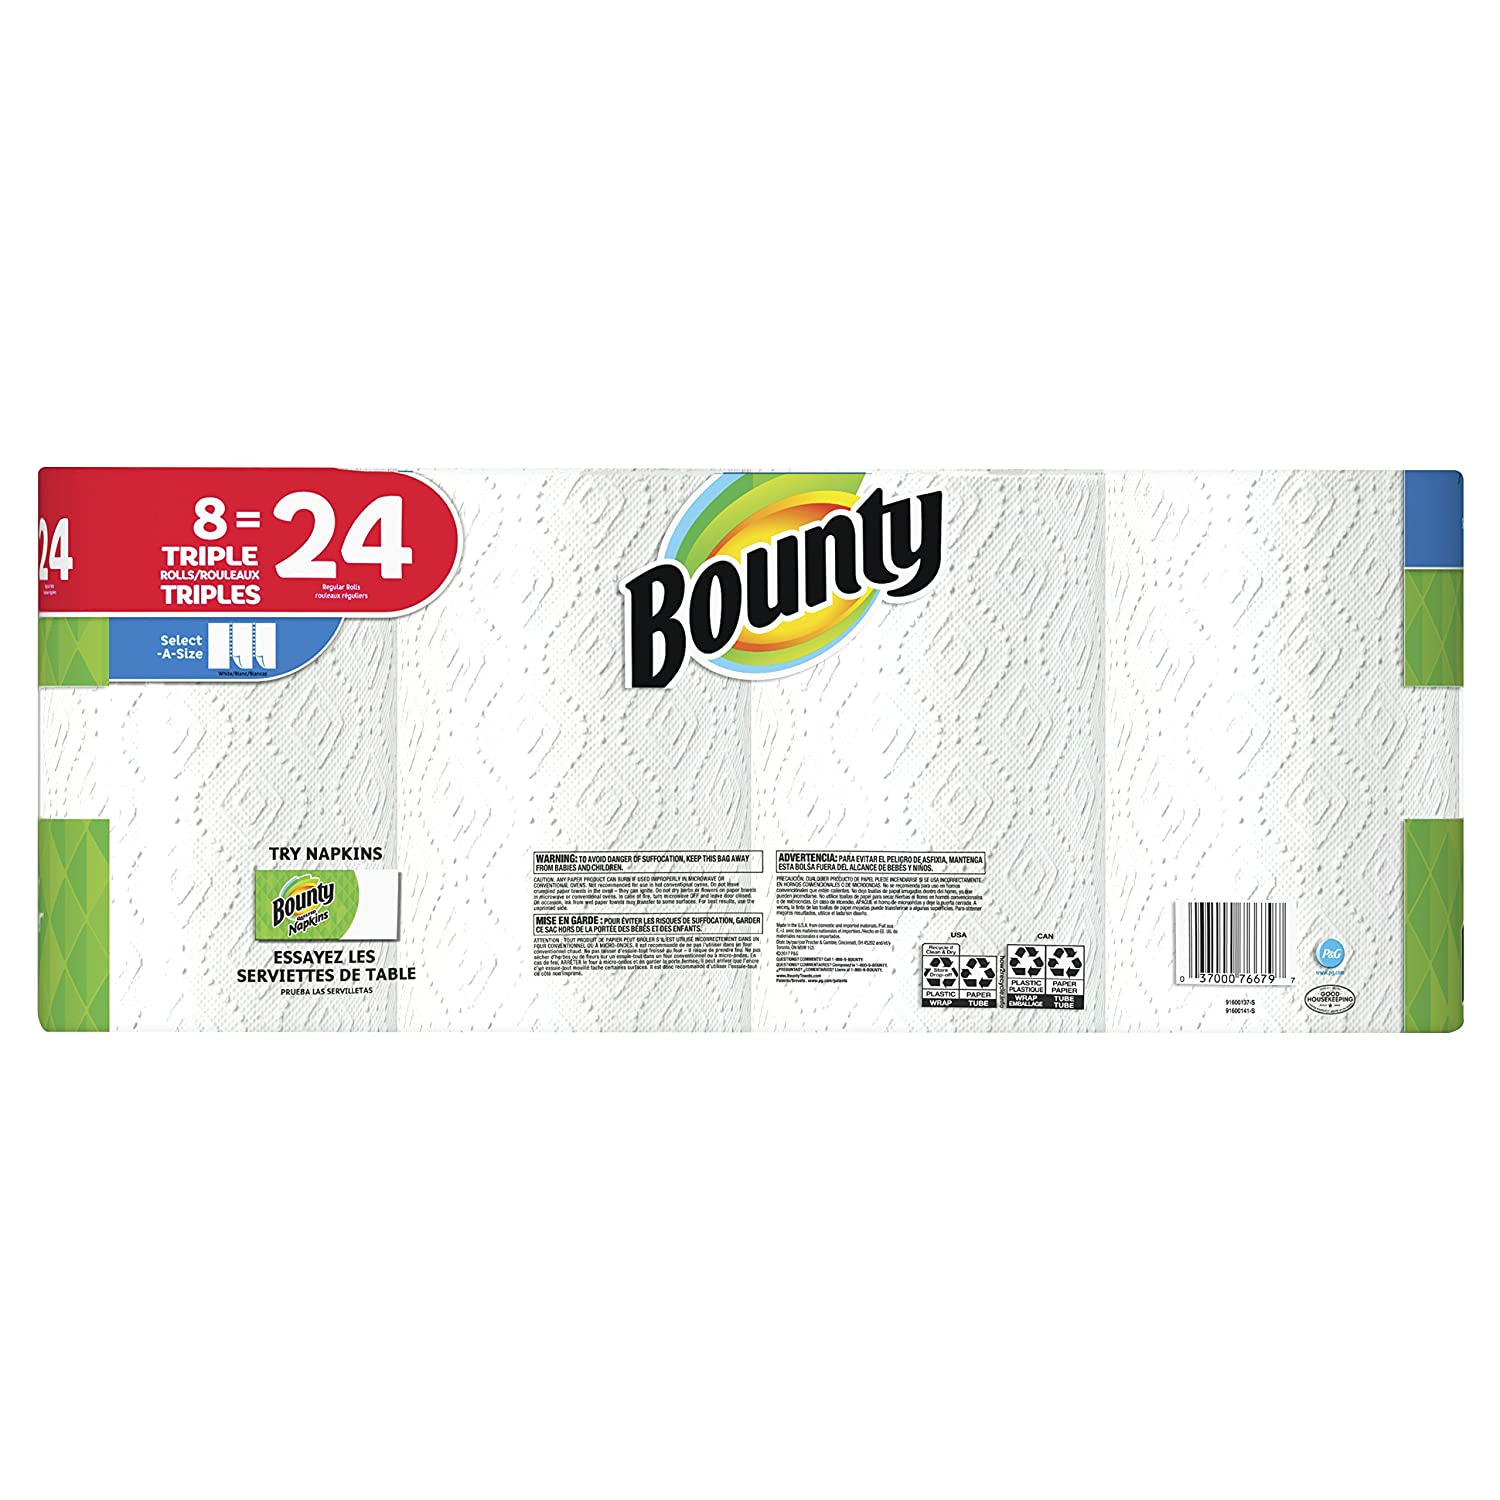 Amazon.com: Bounty Paper Towels, Select-A-Size, 8 Triple Rolls: Health & Personal Care